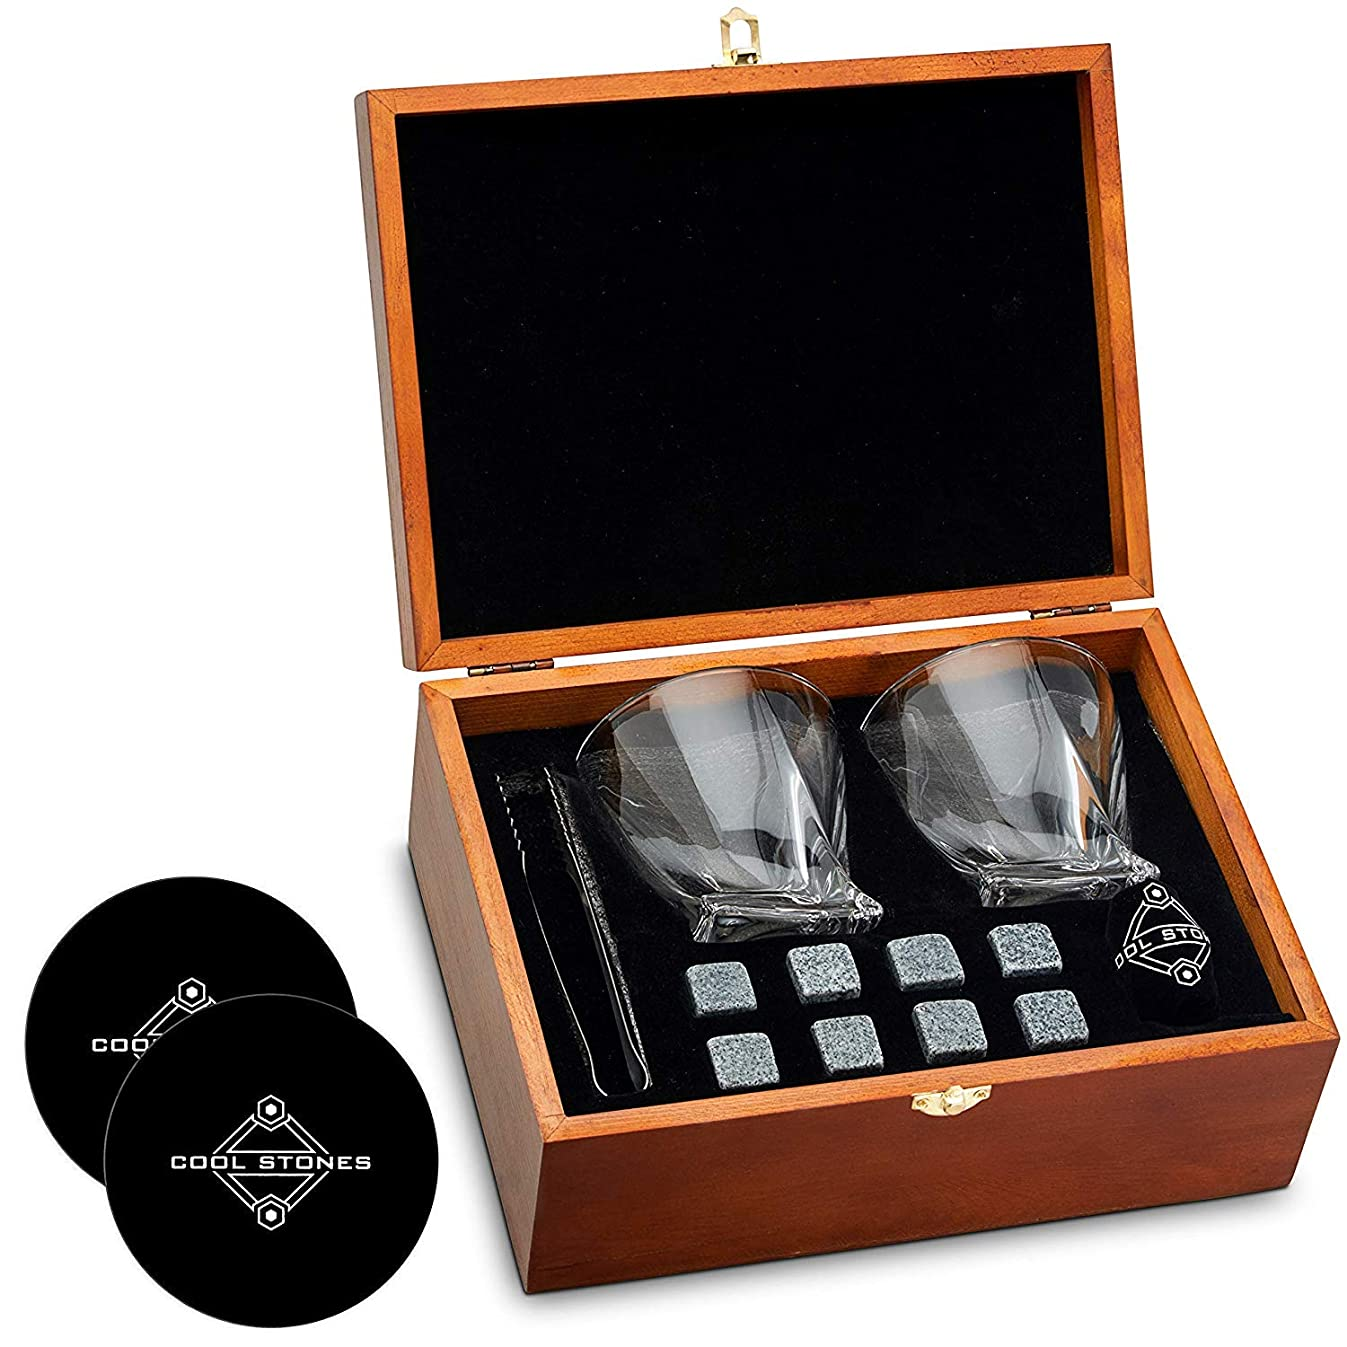 Whiskey Stones and Whiskey Glass Gift Boxed Set - 8 Granite Chilling Whisky Rocks + 2 Crystal Glasses in Wooden Box - Great Gift for Father's Day, Dad's Birthday or Anytime For Dad (+ 2 Free Coasters)